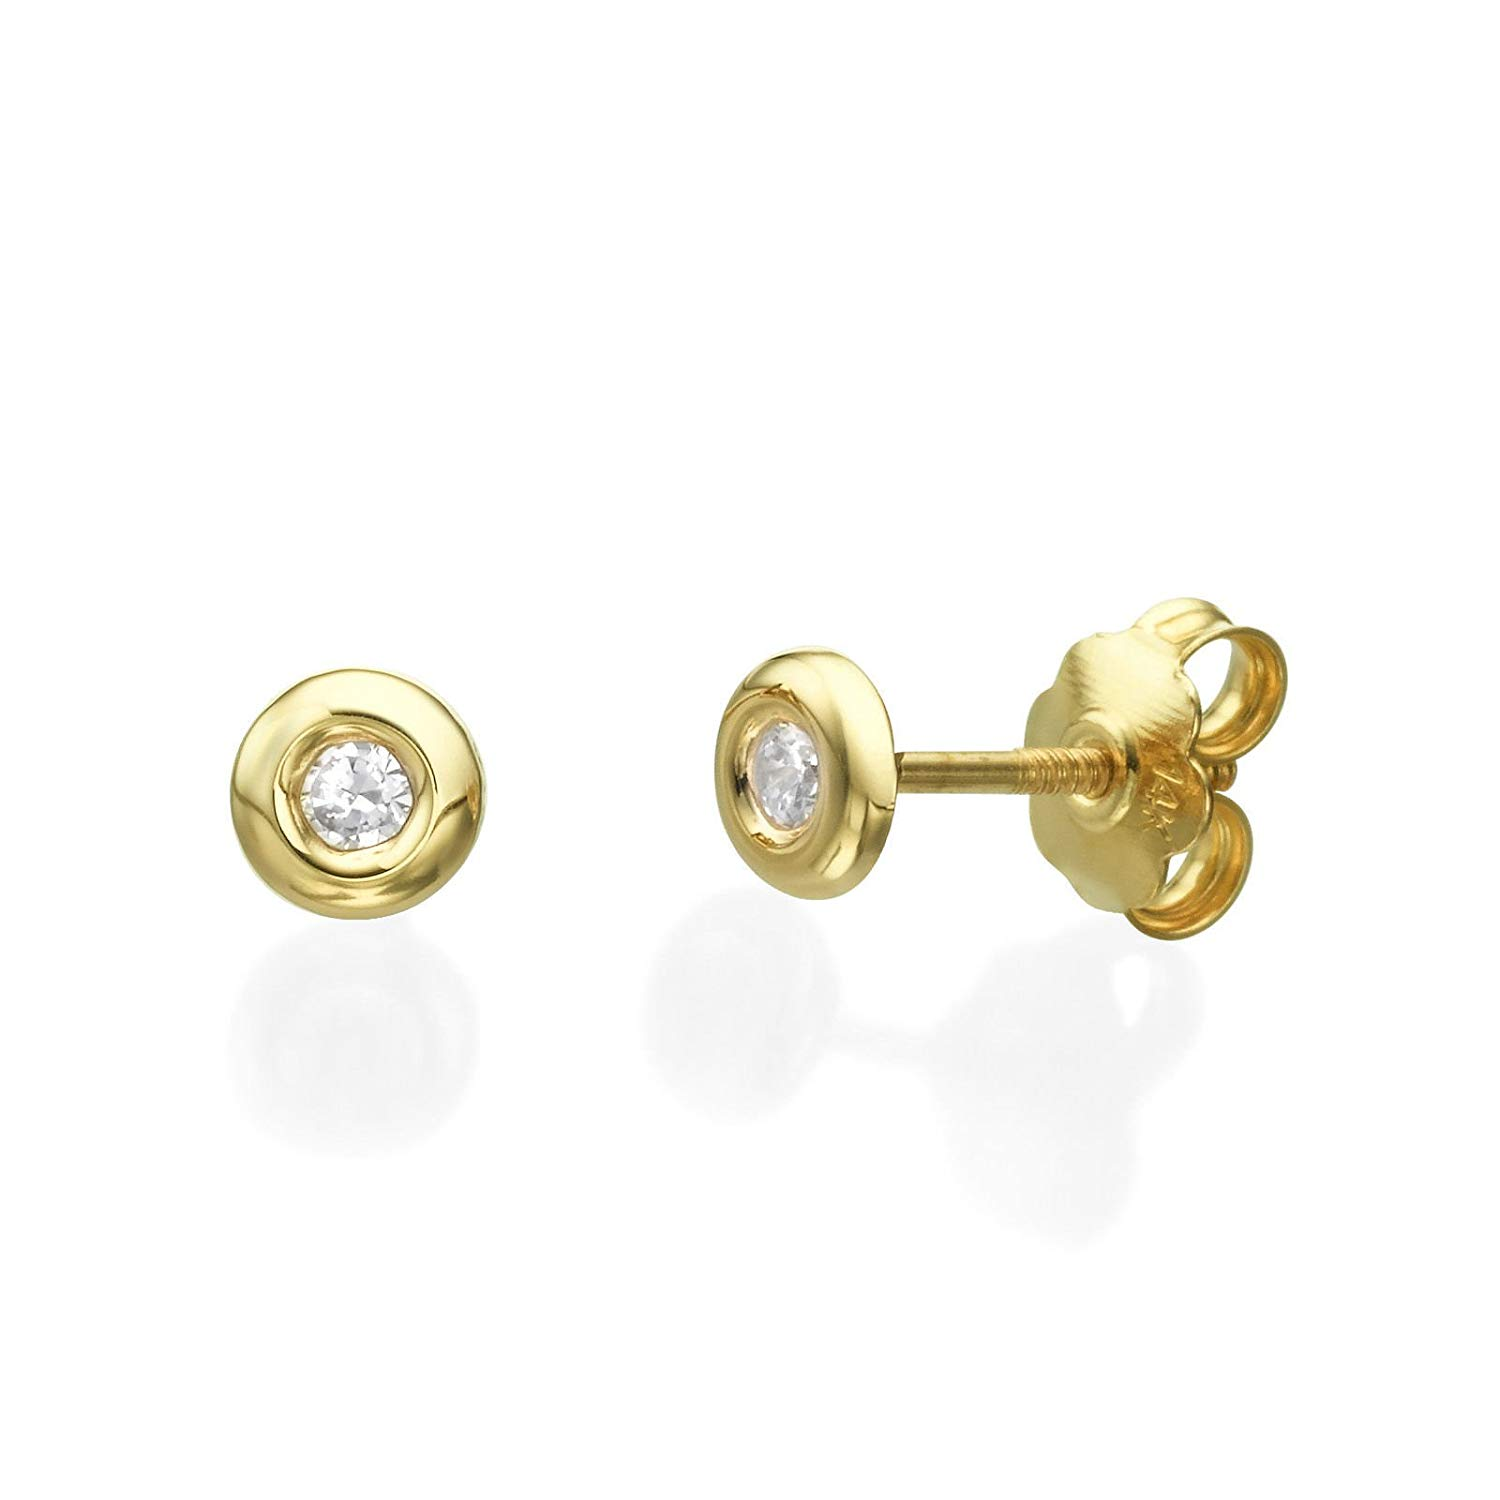 e7e977ca3 Get Quotations · 14K Solid Yellow Gold Cubic Zirconia Round Screw Back Stud  Earrings for Baby Girls Kids Children